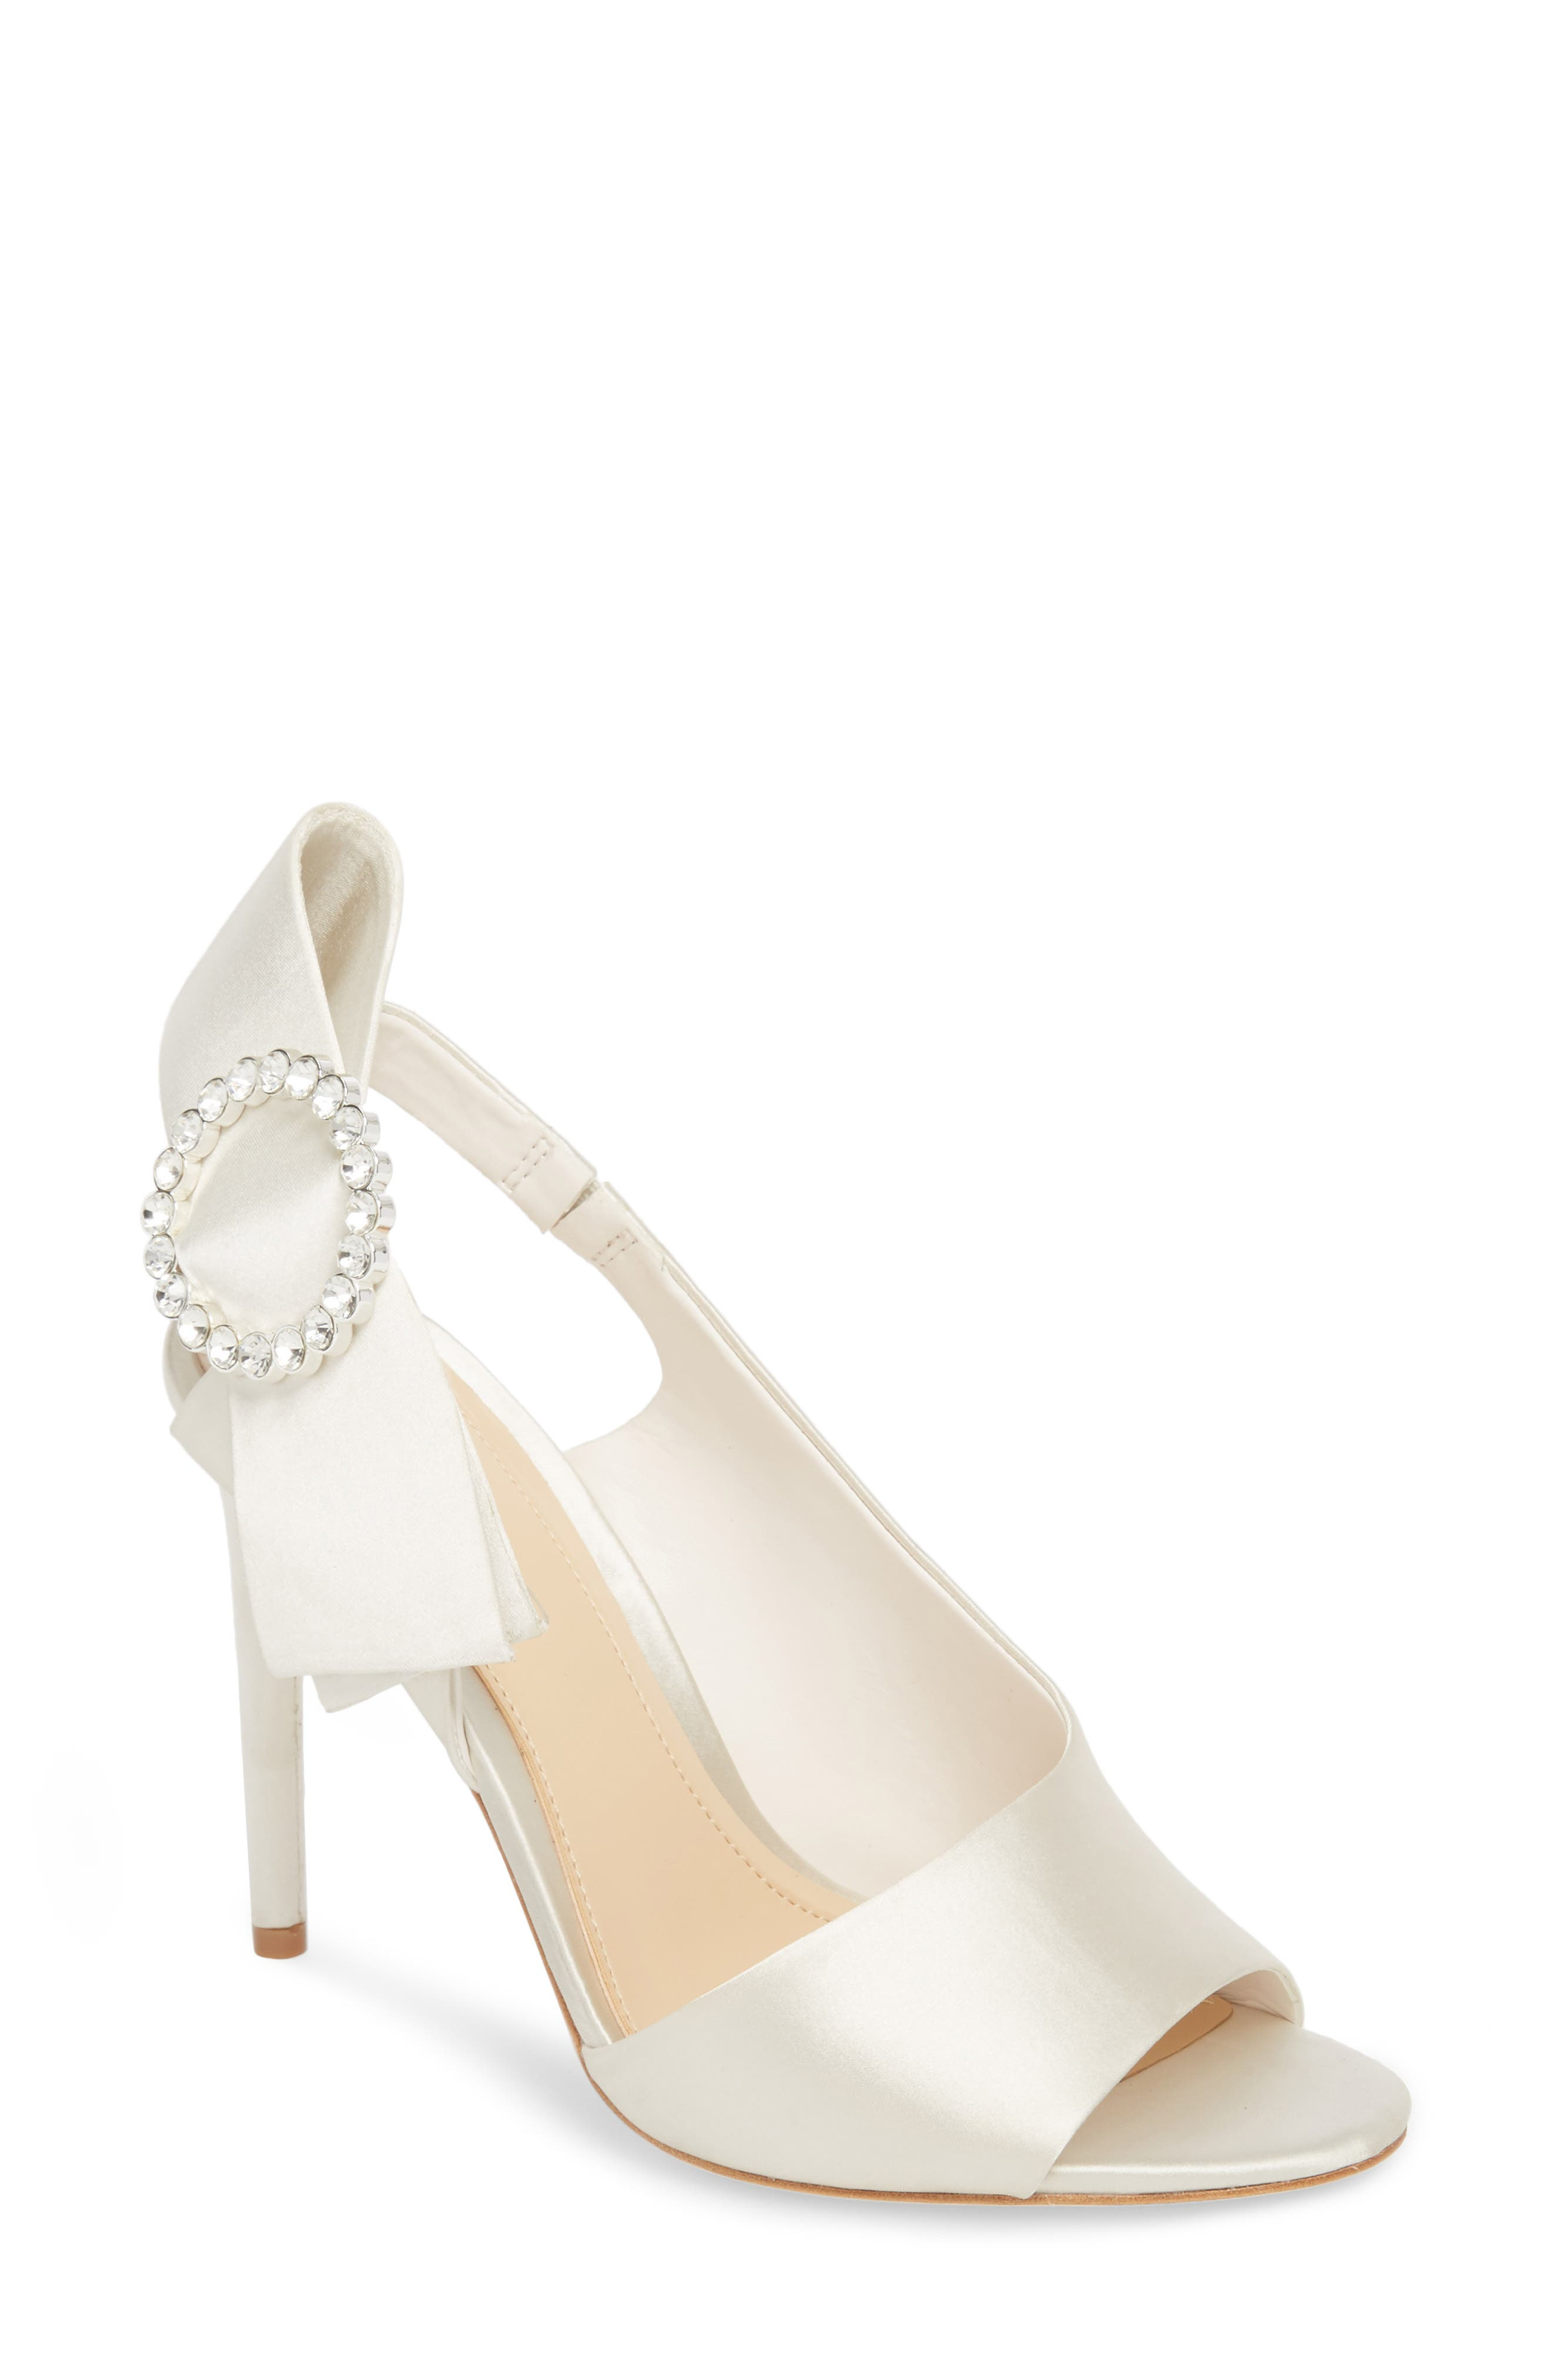 Imagine By Vince Camuto Regin Sandal, White